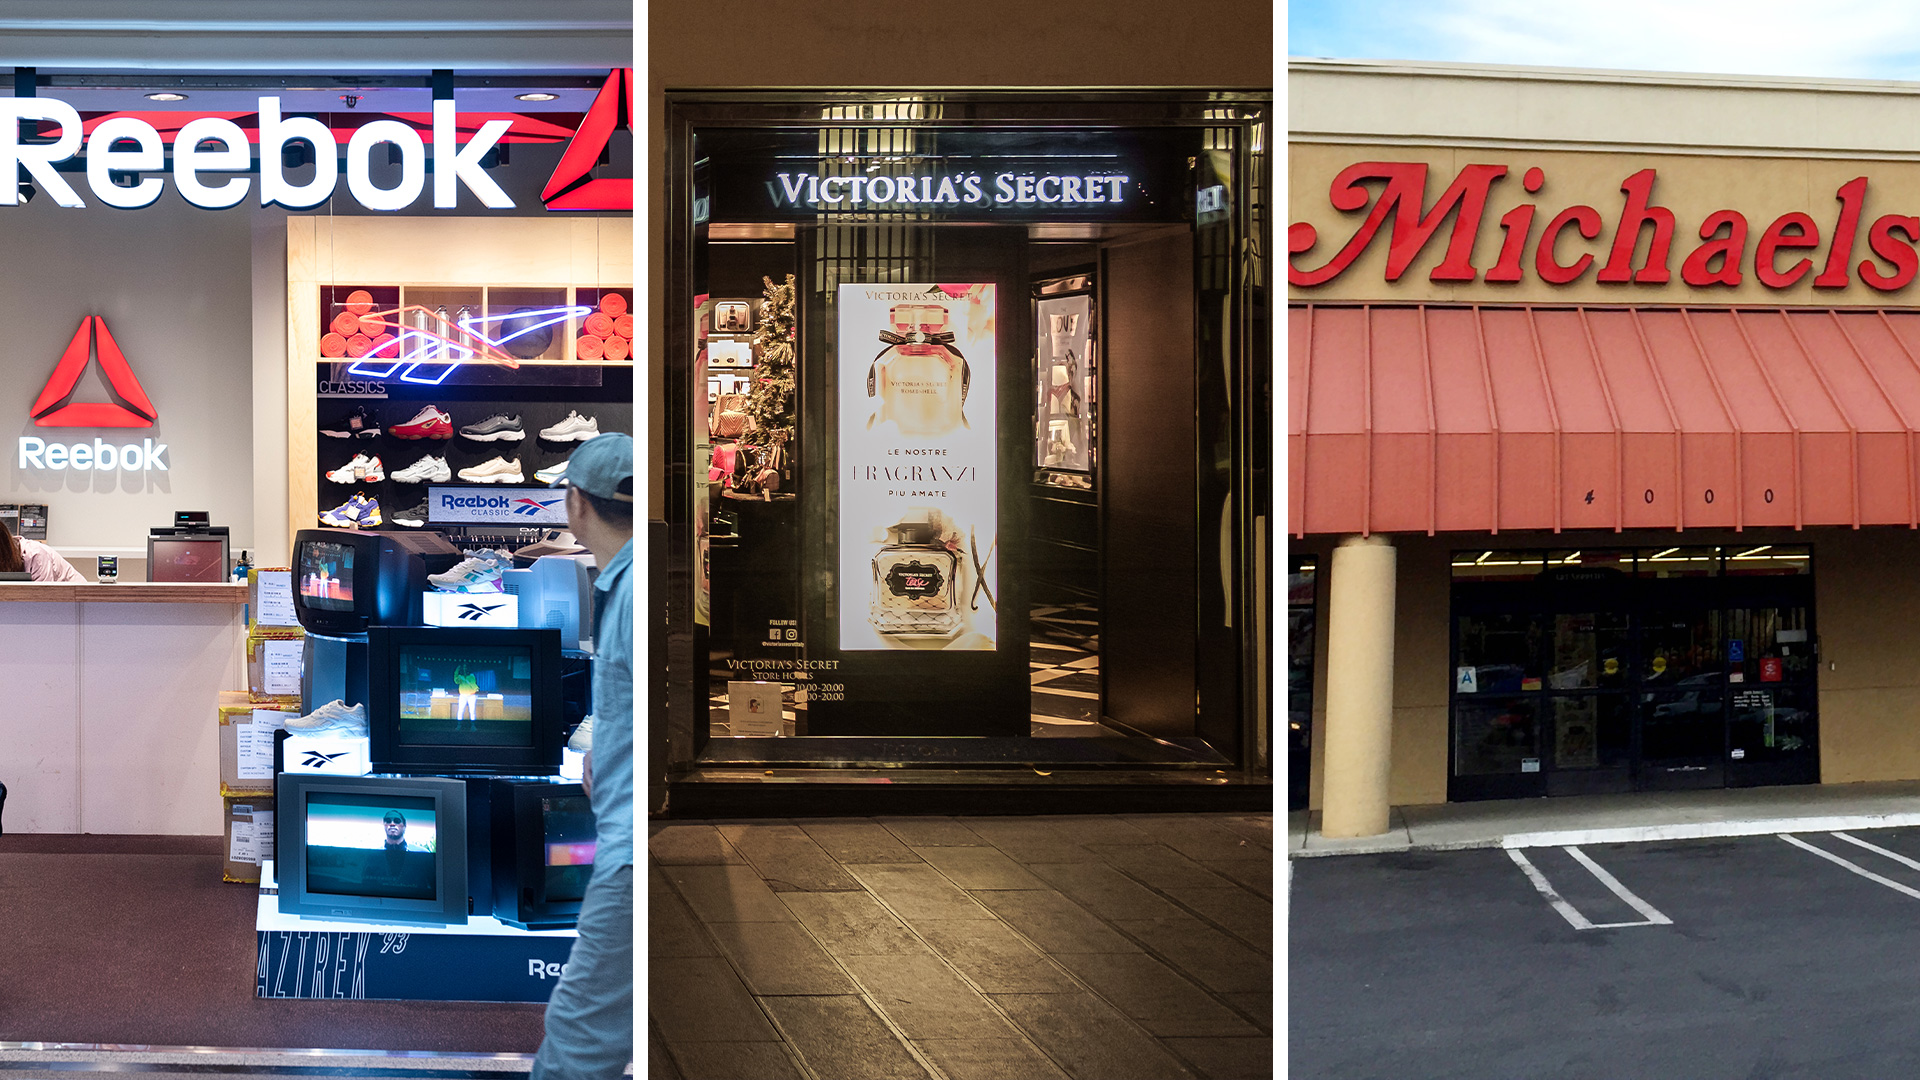 storefront of Reebok, Victoria's Secret and Michaels